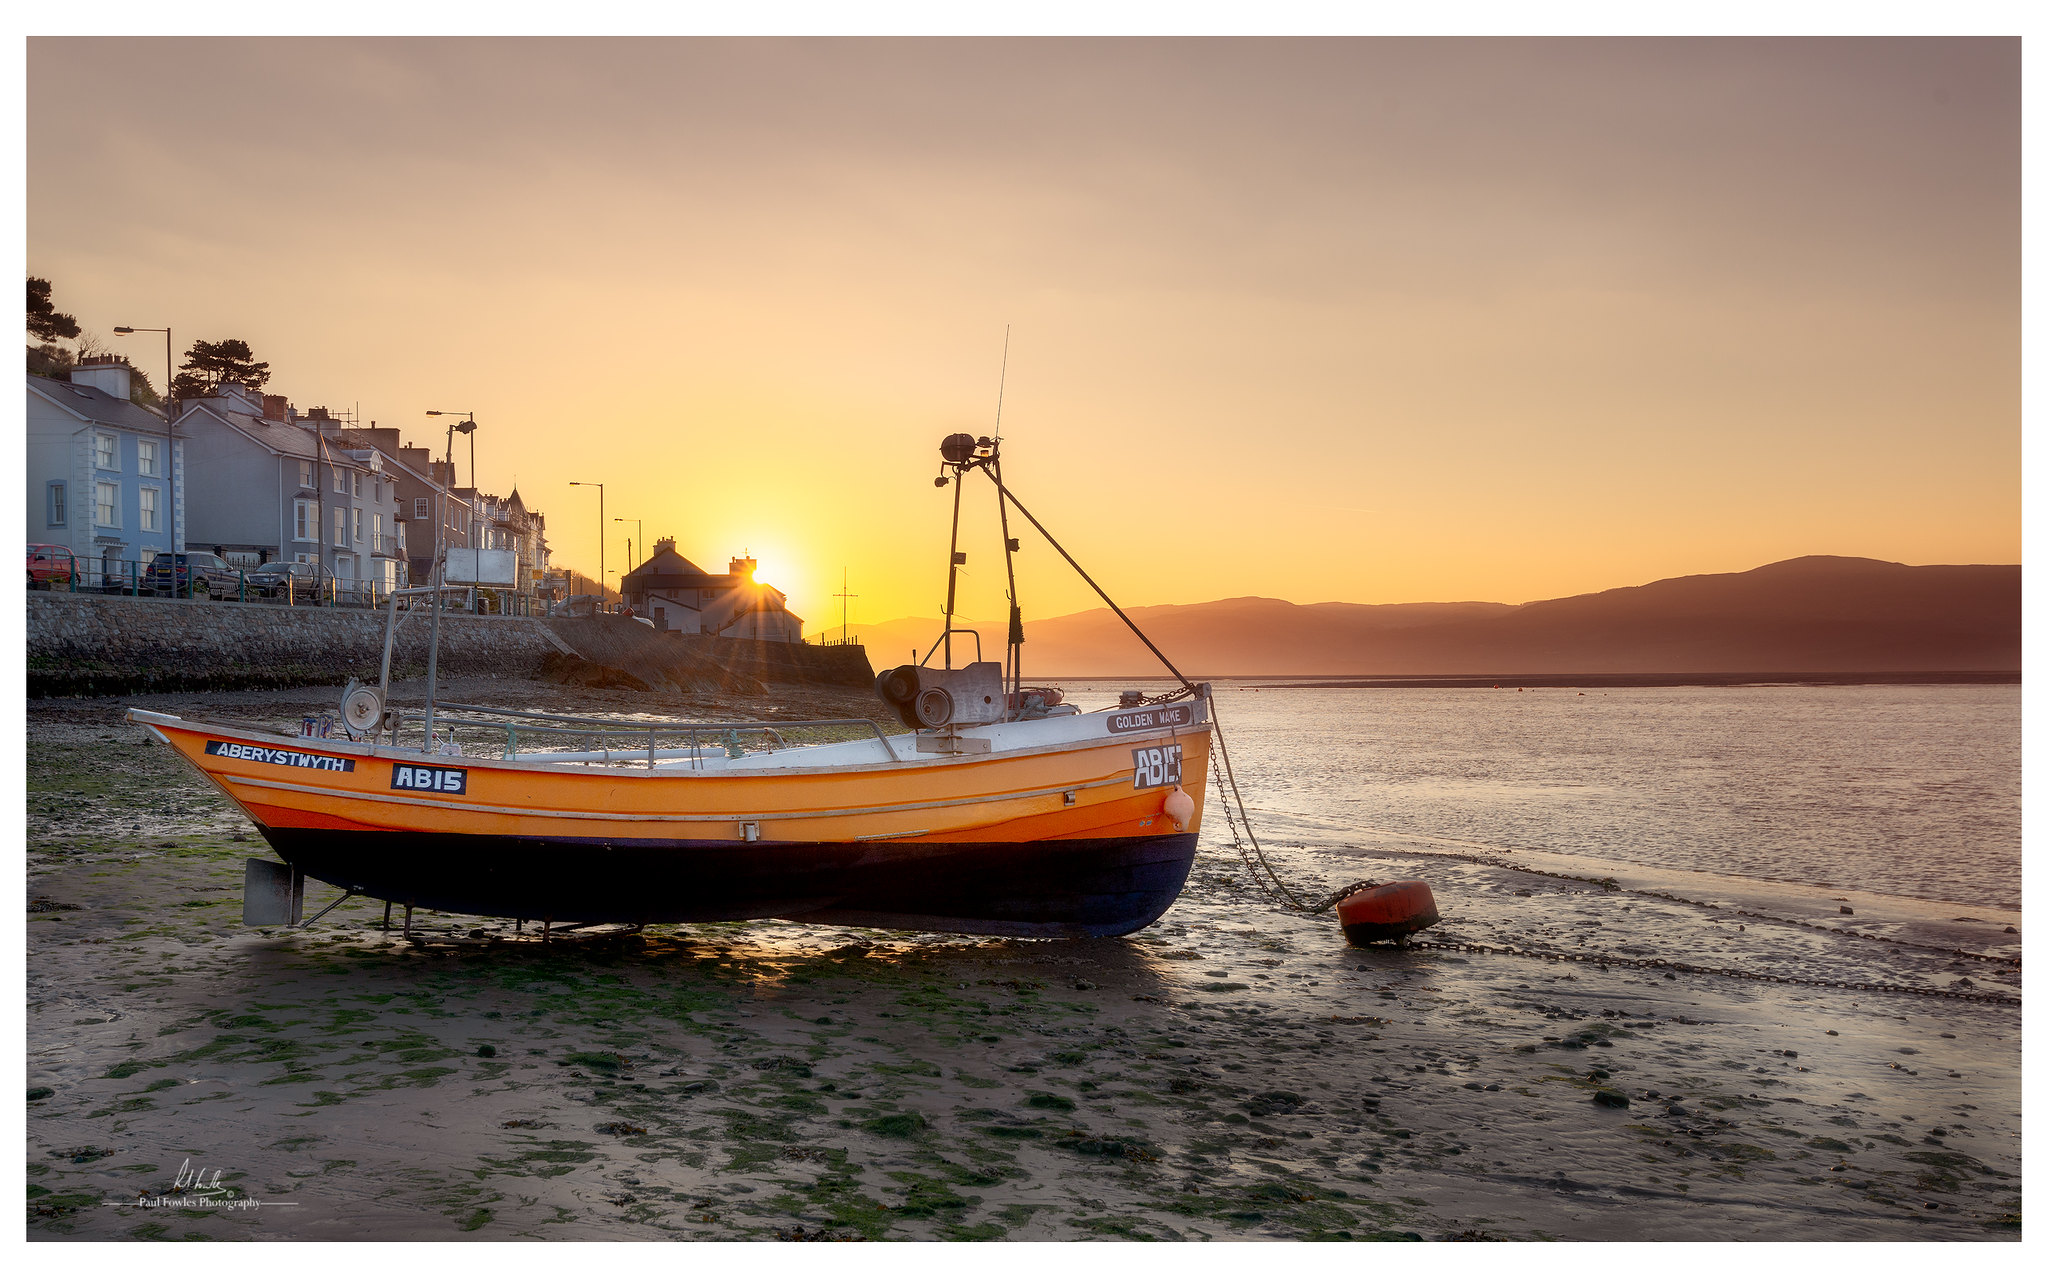 Aberdovey - Aberdyfi - Paul Fowles Photography - Pauls Boat Church Bay